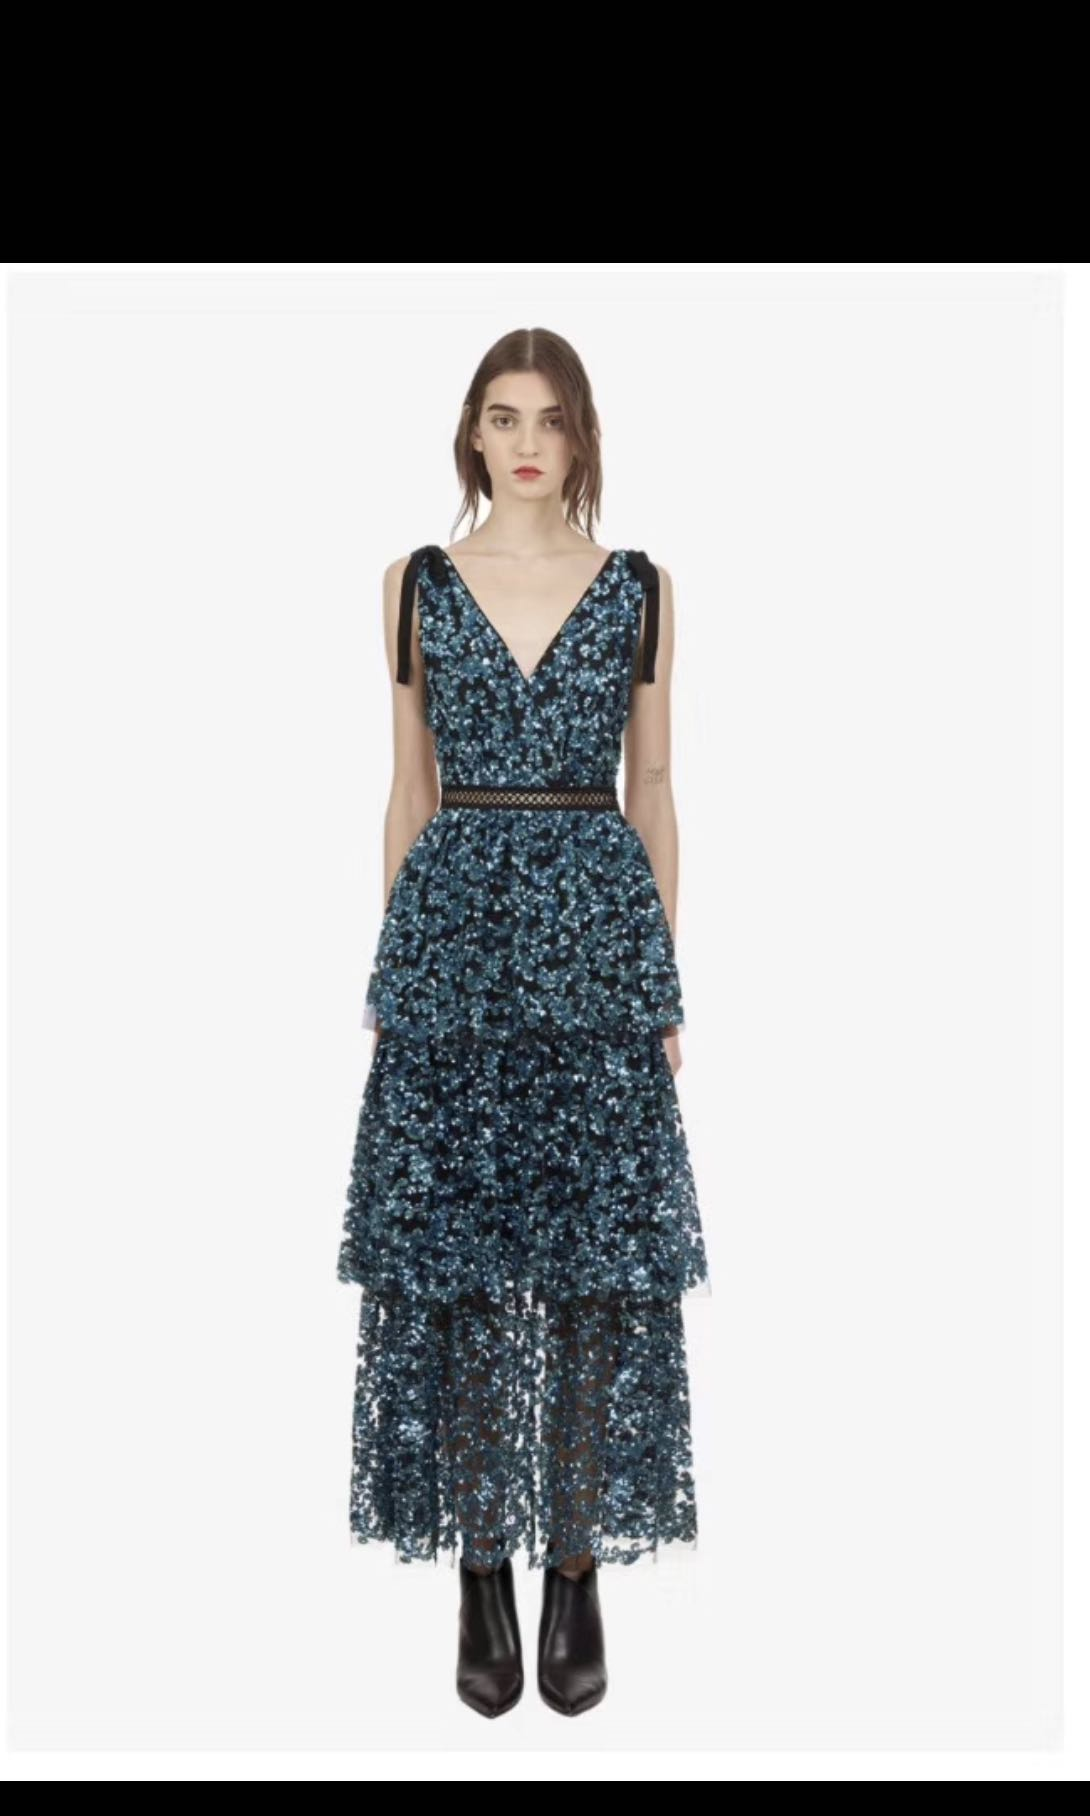 1f602f21ce36 BNWT Authentic Self Portrait Sequin Embroidered Long Dress, Women's  Fashion, Clothes, Dresses & Skirts on Carousell